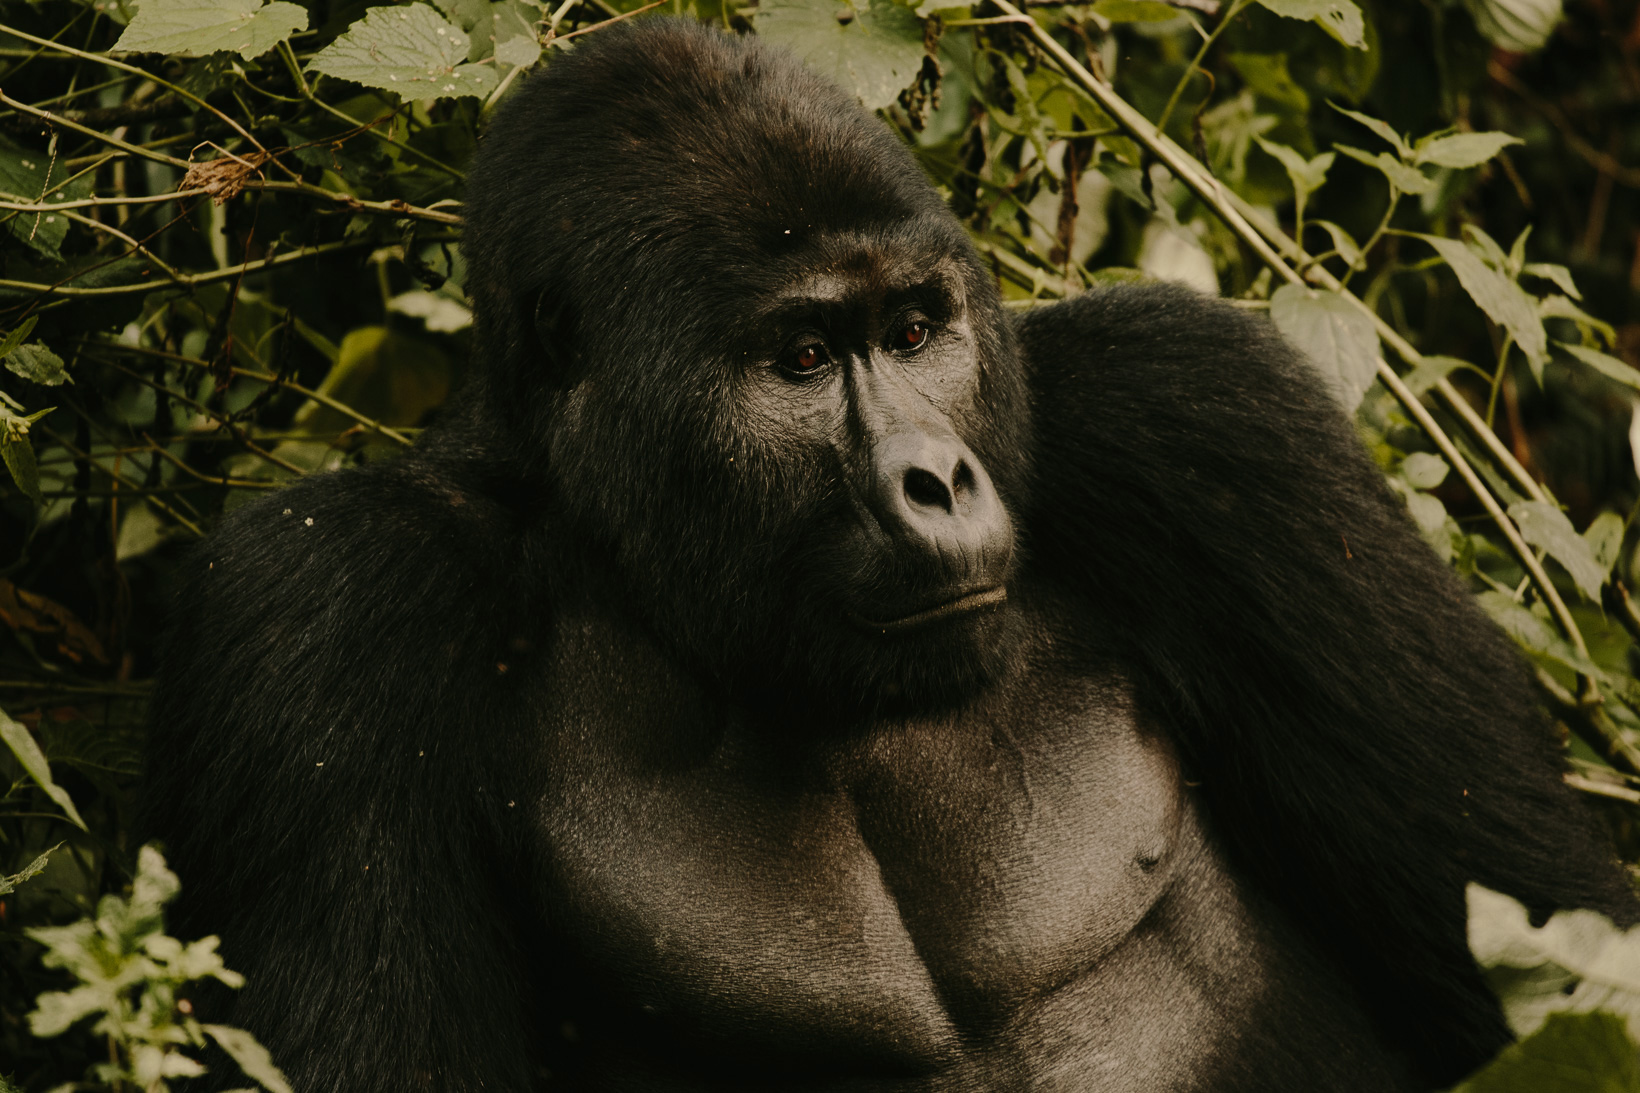 bwindi impenetrable forest gorillas uganda